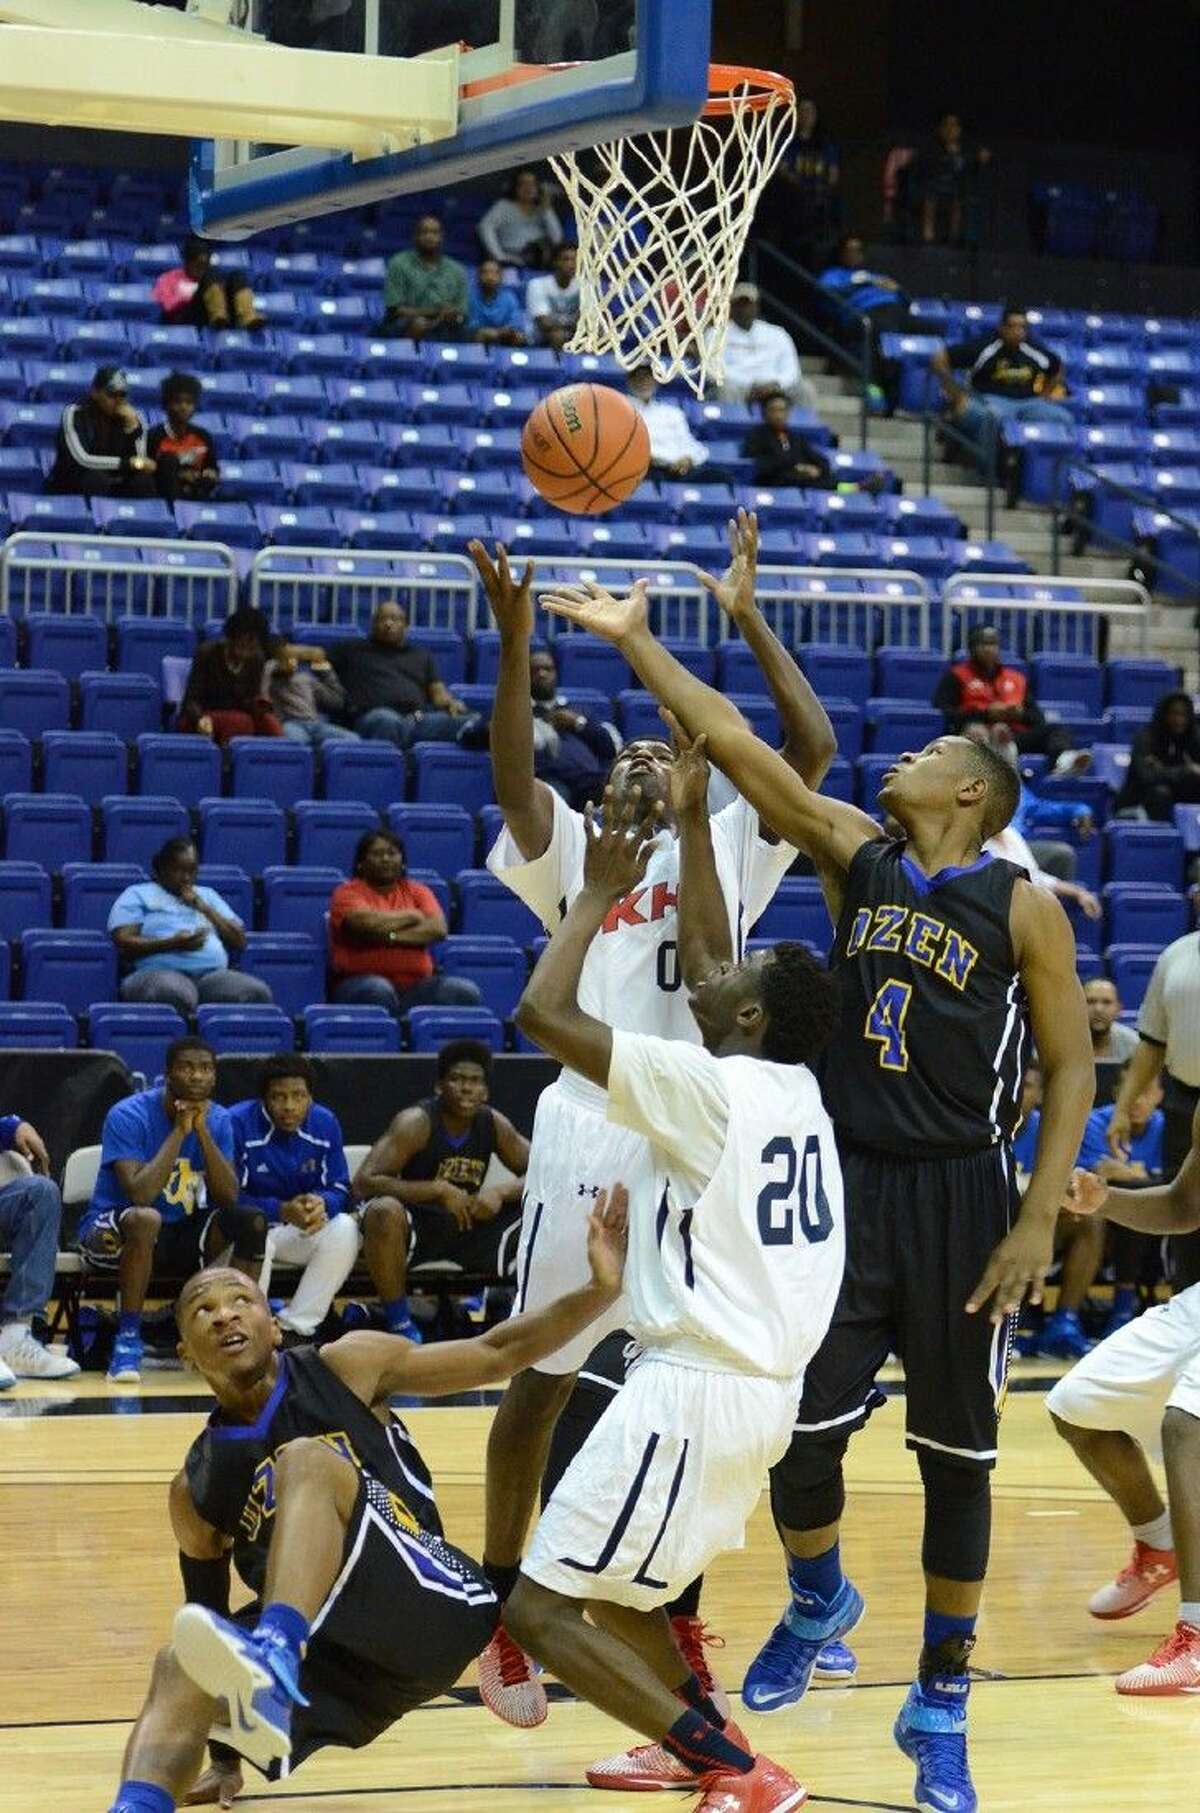 Beaumont Ozen and Dallas Kimball clashed in the 2014 Cypress Hoops Invitational. Both Ozen, the defending champion, and runner-up Kimball will appear in this year's tournament.